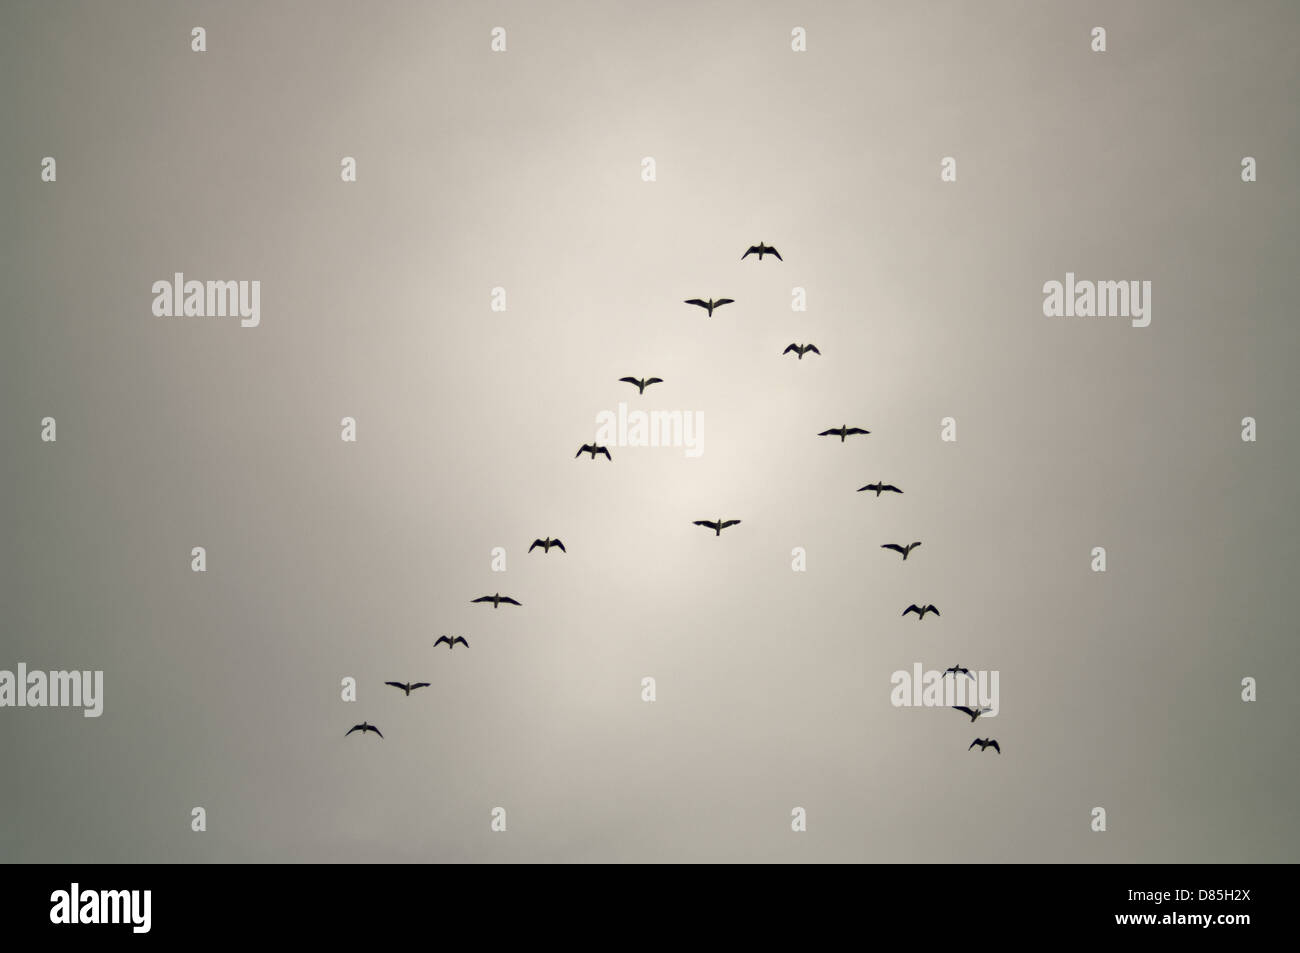 Birds in arrow formation with one bird out of line conceptual - Stock Image